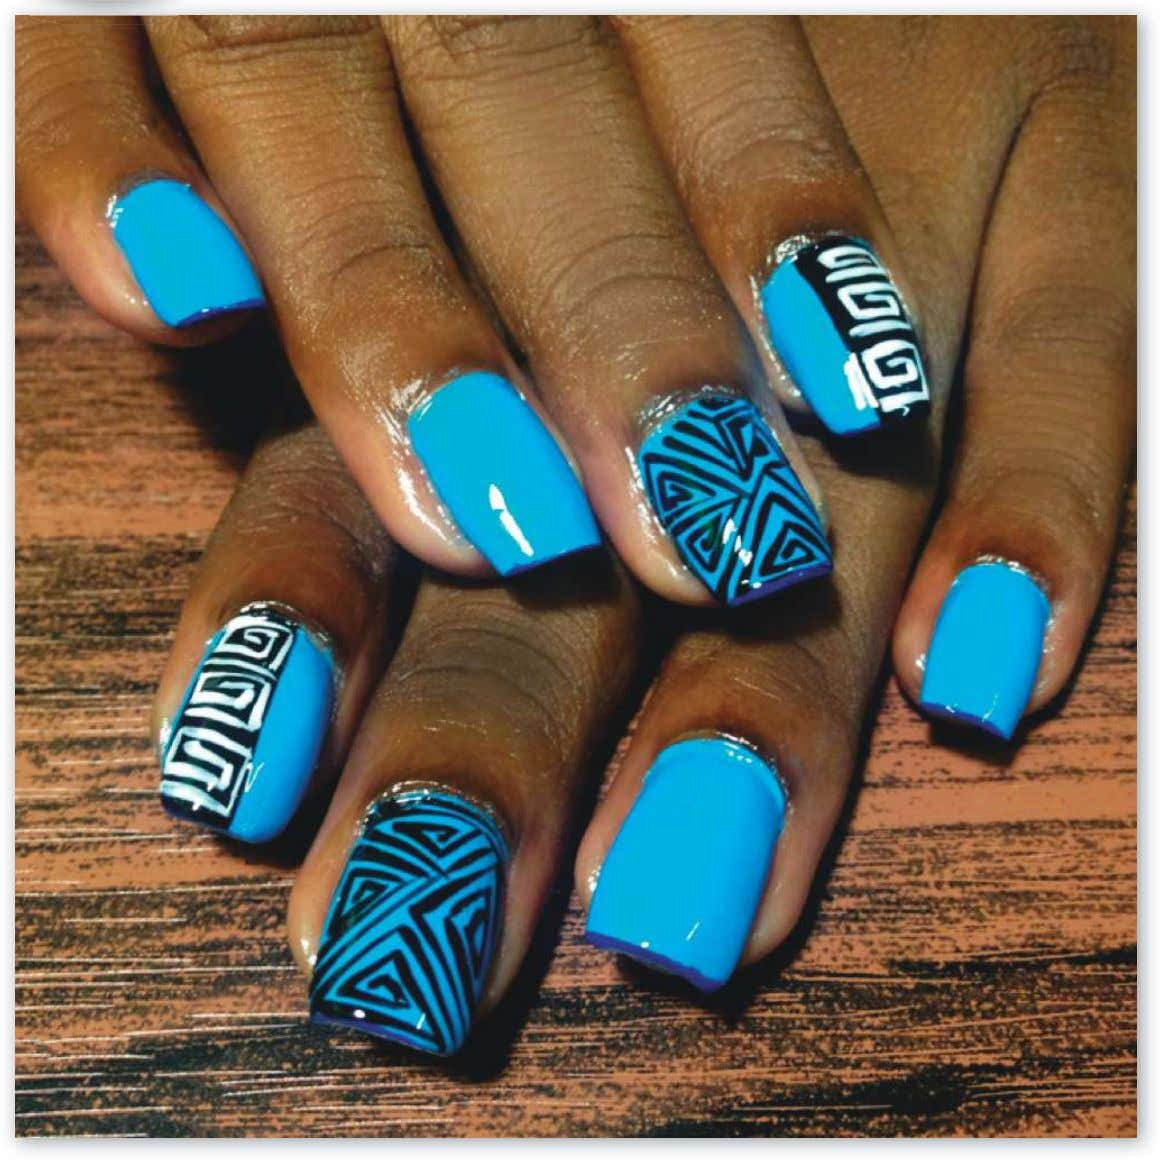 tribal! Kerlisha Munroe, Kerly's Artistic Nails, Trinidad and Tobago [Click here for full profile.] 20